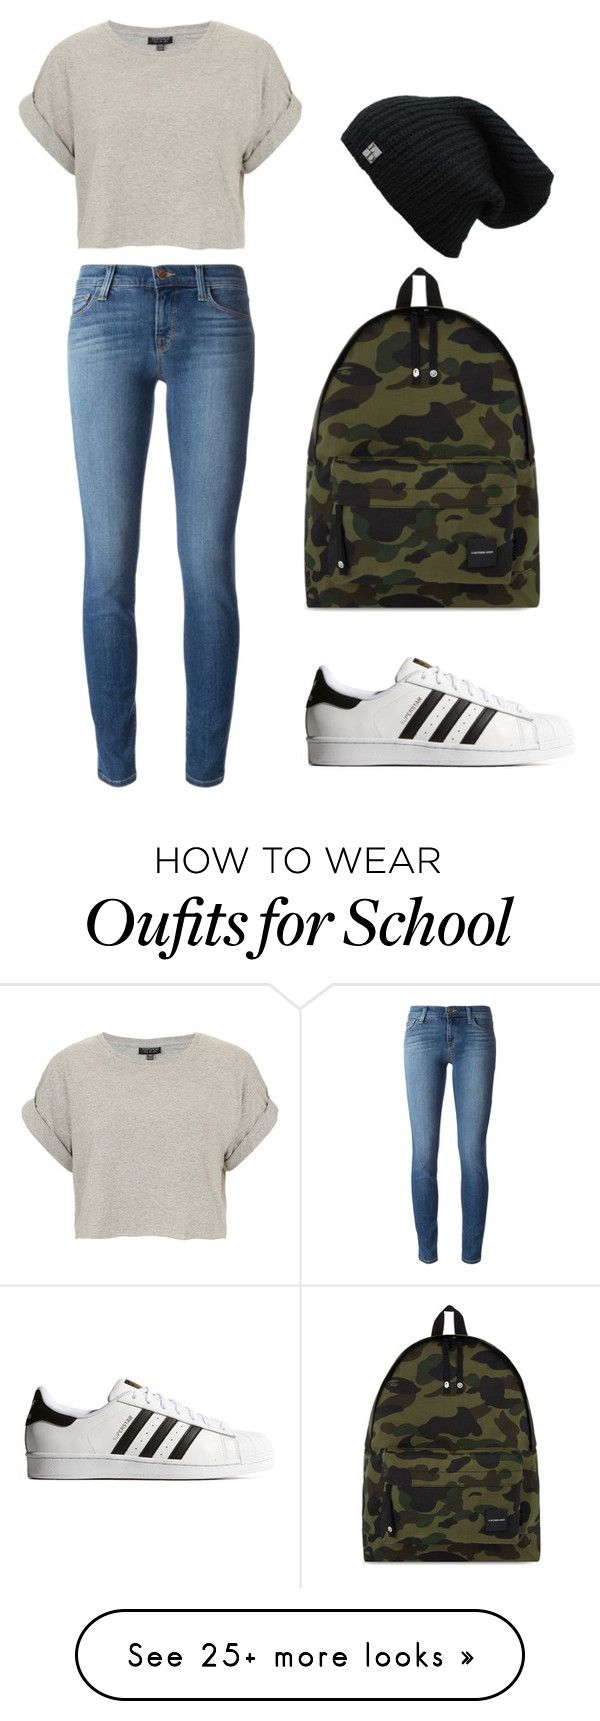 """""""Walking to school"""" by charlotteh2001 on Polyvore featuring J Brand, Topshop, adidas Originals and A BATHING APE"""